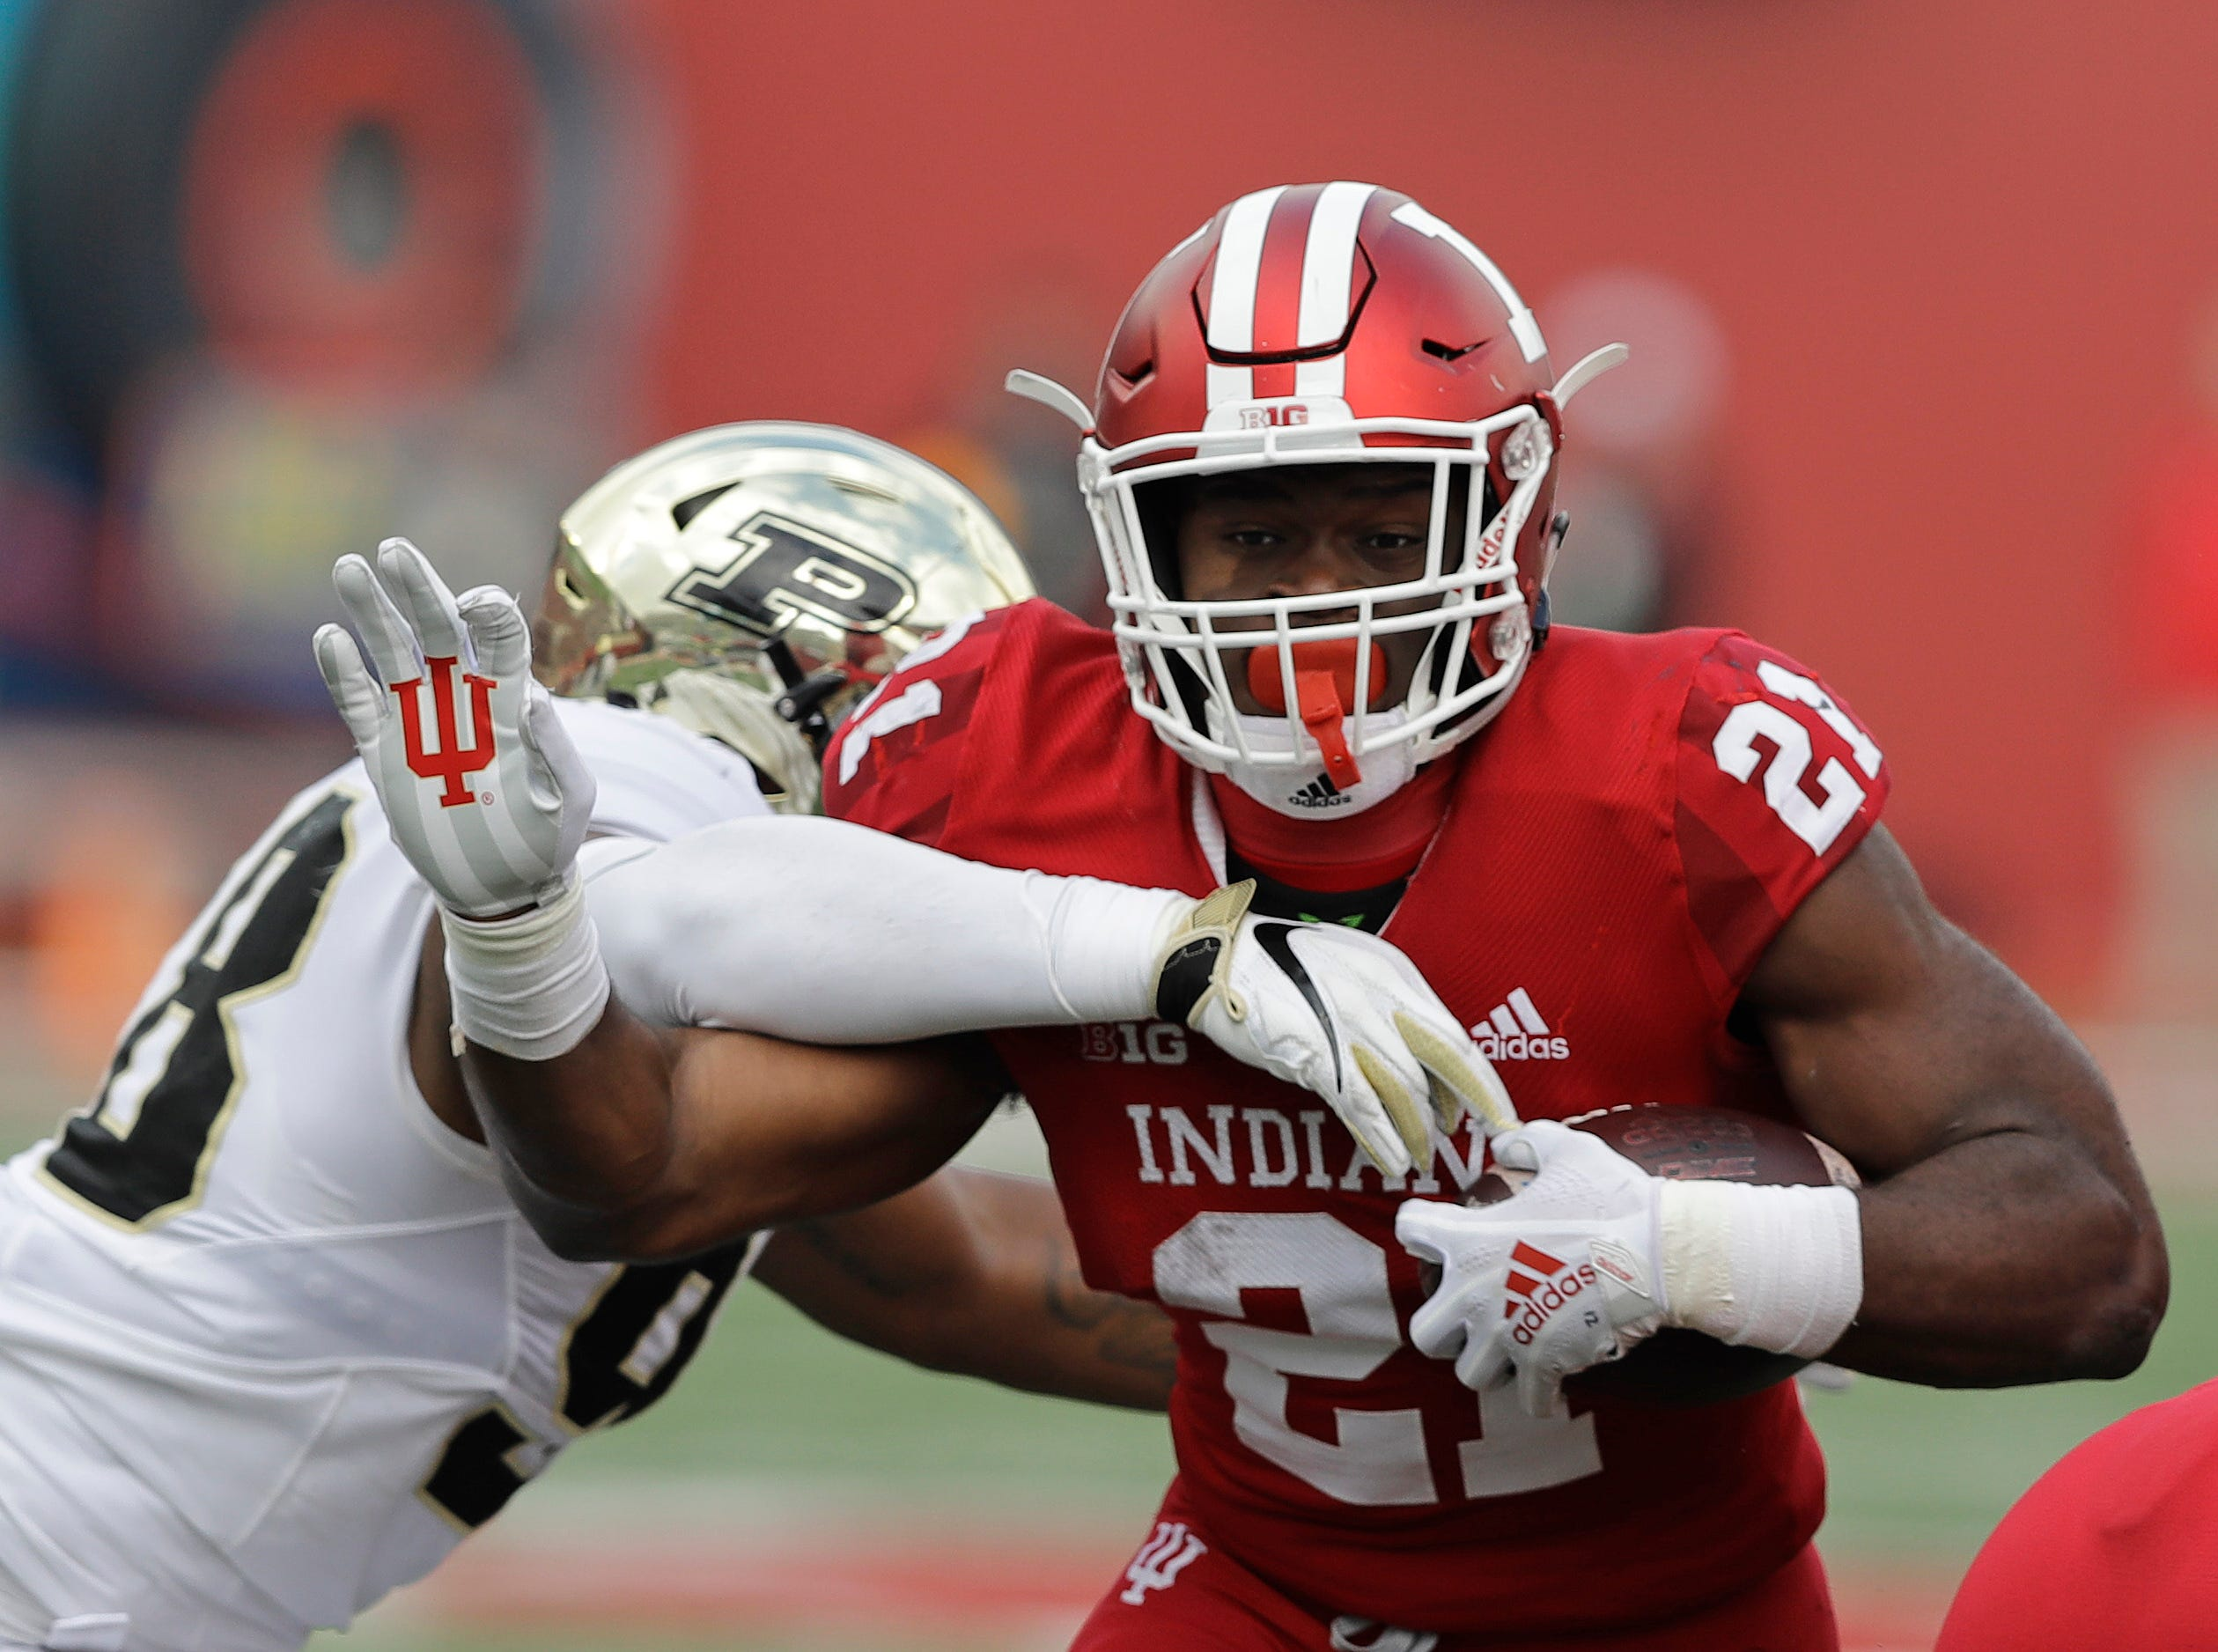 10. Indiana (5-7, 2-7) – The Hoosiers could never get over the hump once Big Ten play began. They were a perfect 3-0 in non-conference play but couldn't generate many big plays once the games got tougher. The Hoosiers were in nearly every game they played, but in the end, they'll miss out on a bowl game for the second straight season under Tom Allen. Last week: 10.